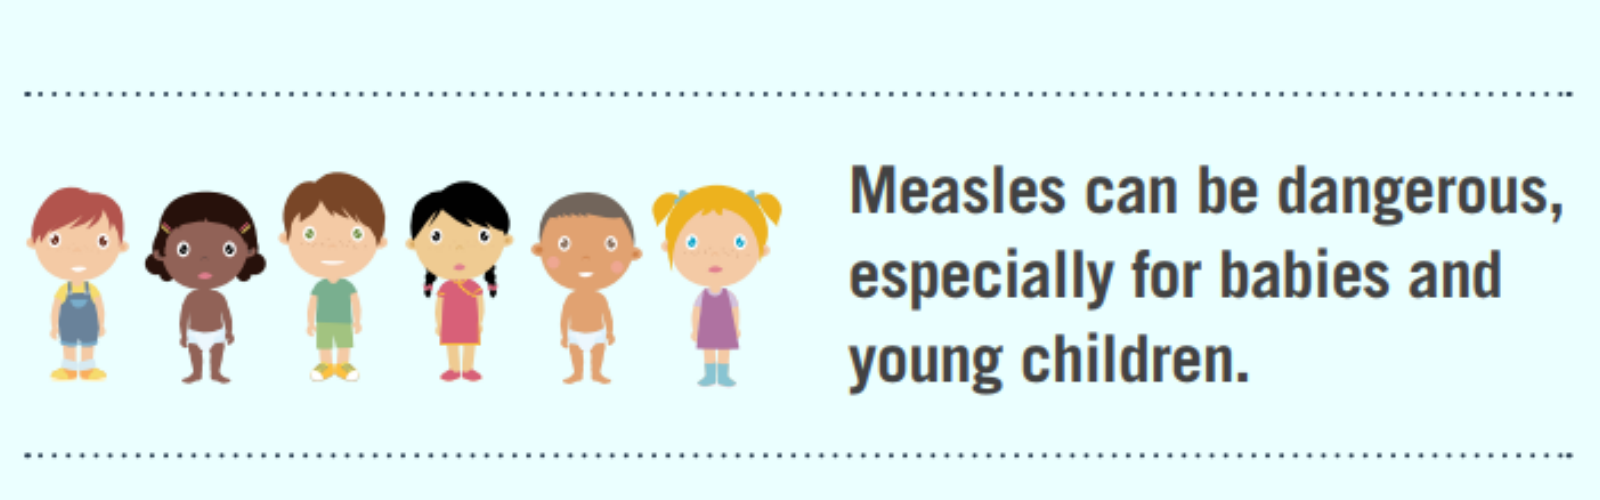 measles can be dangerous, especially for babies and young children